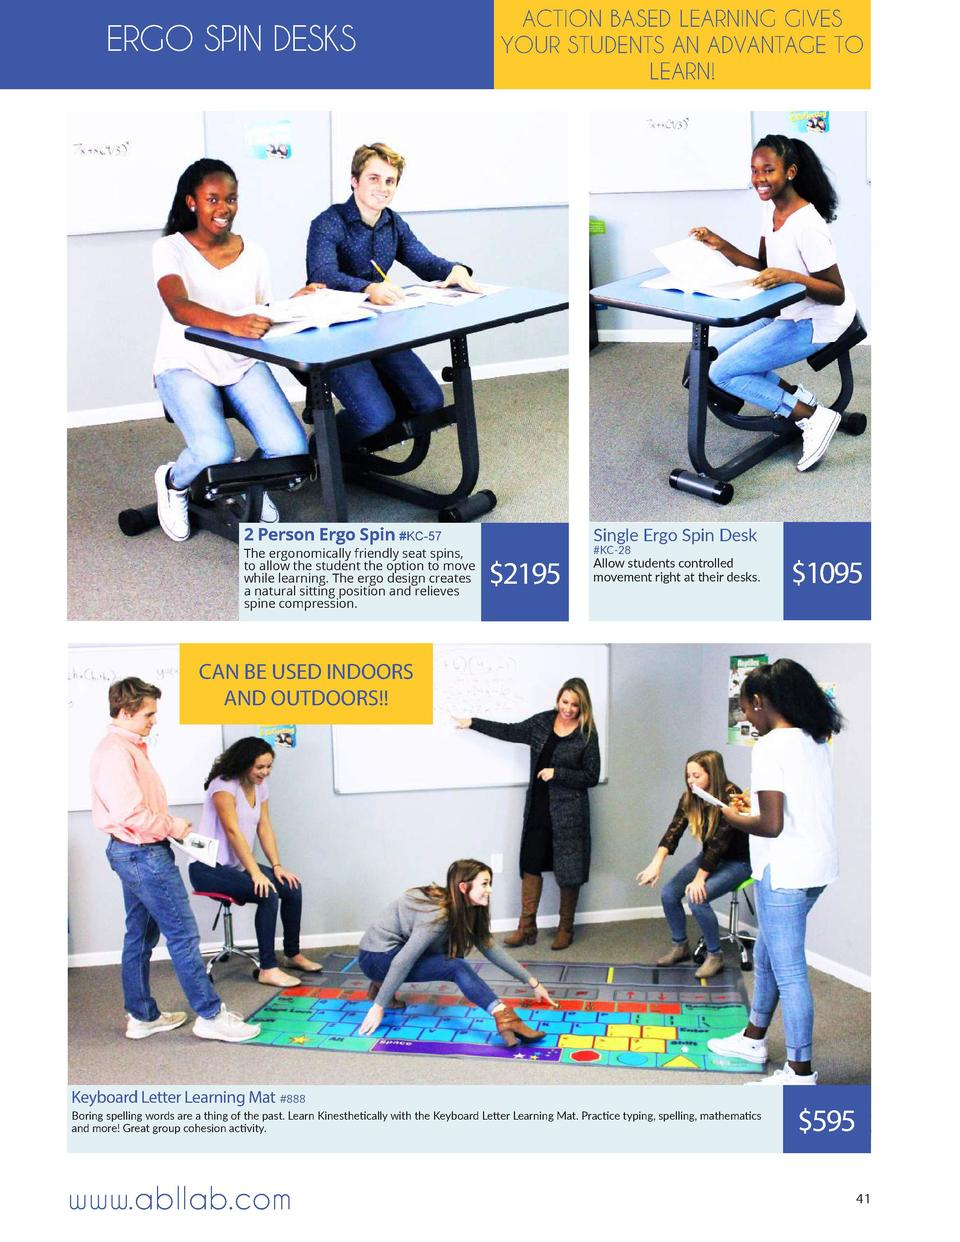 ERGO SPIN DESKS  ACTION BASED LEARNING GIVES YOUR STUDENTS AN ADVANTAGE TO LEARN   2 Person Ergo Spin  KC-57  The ergonomi...